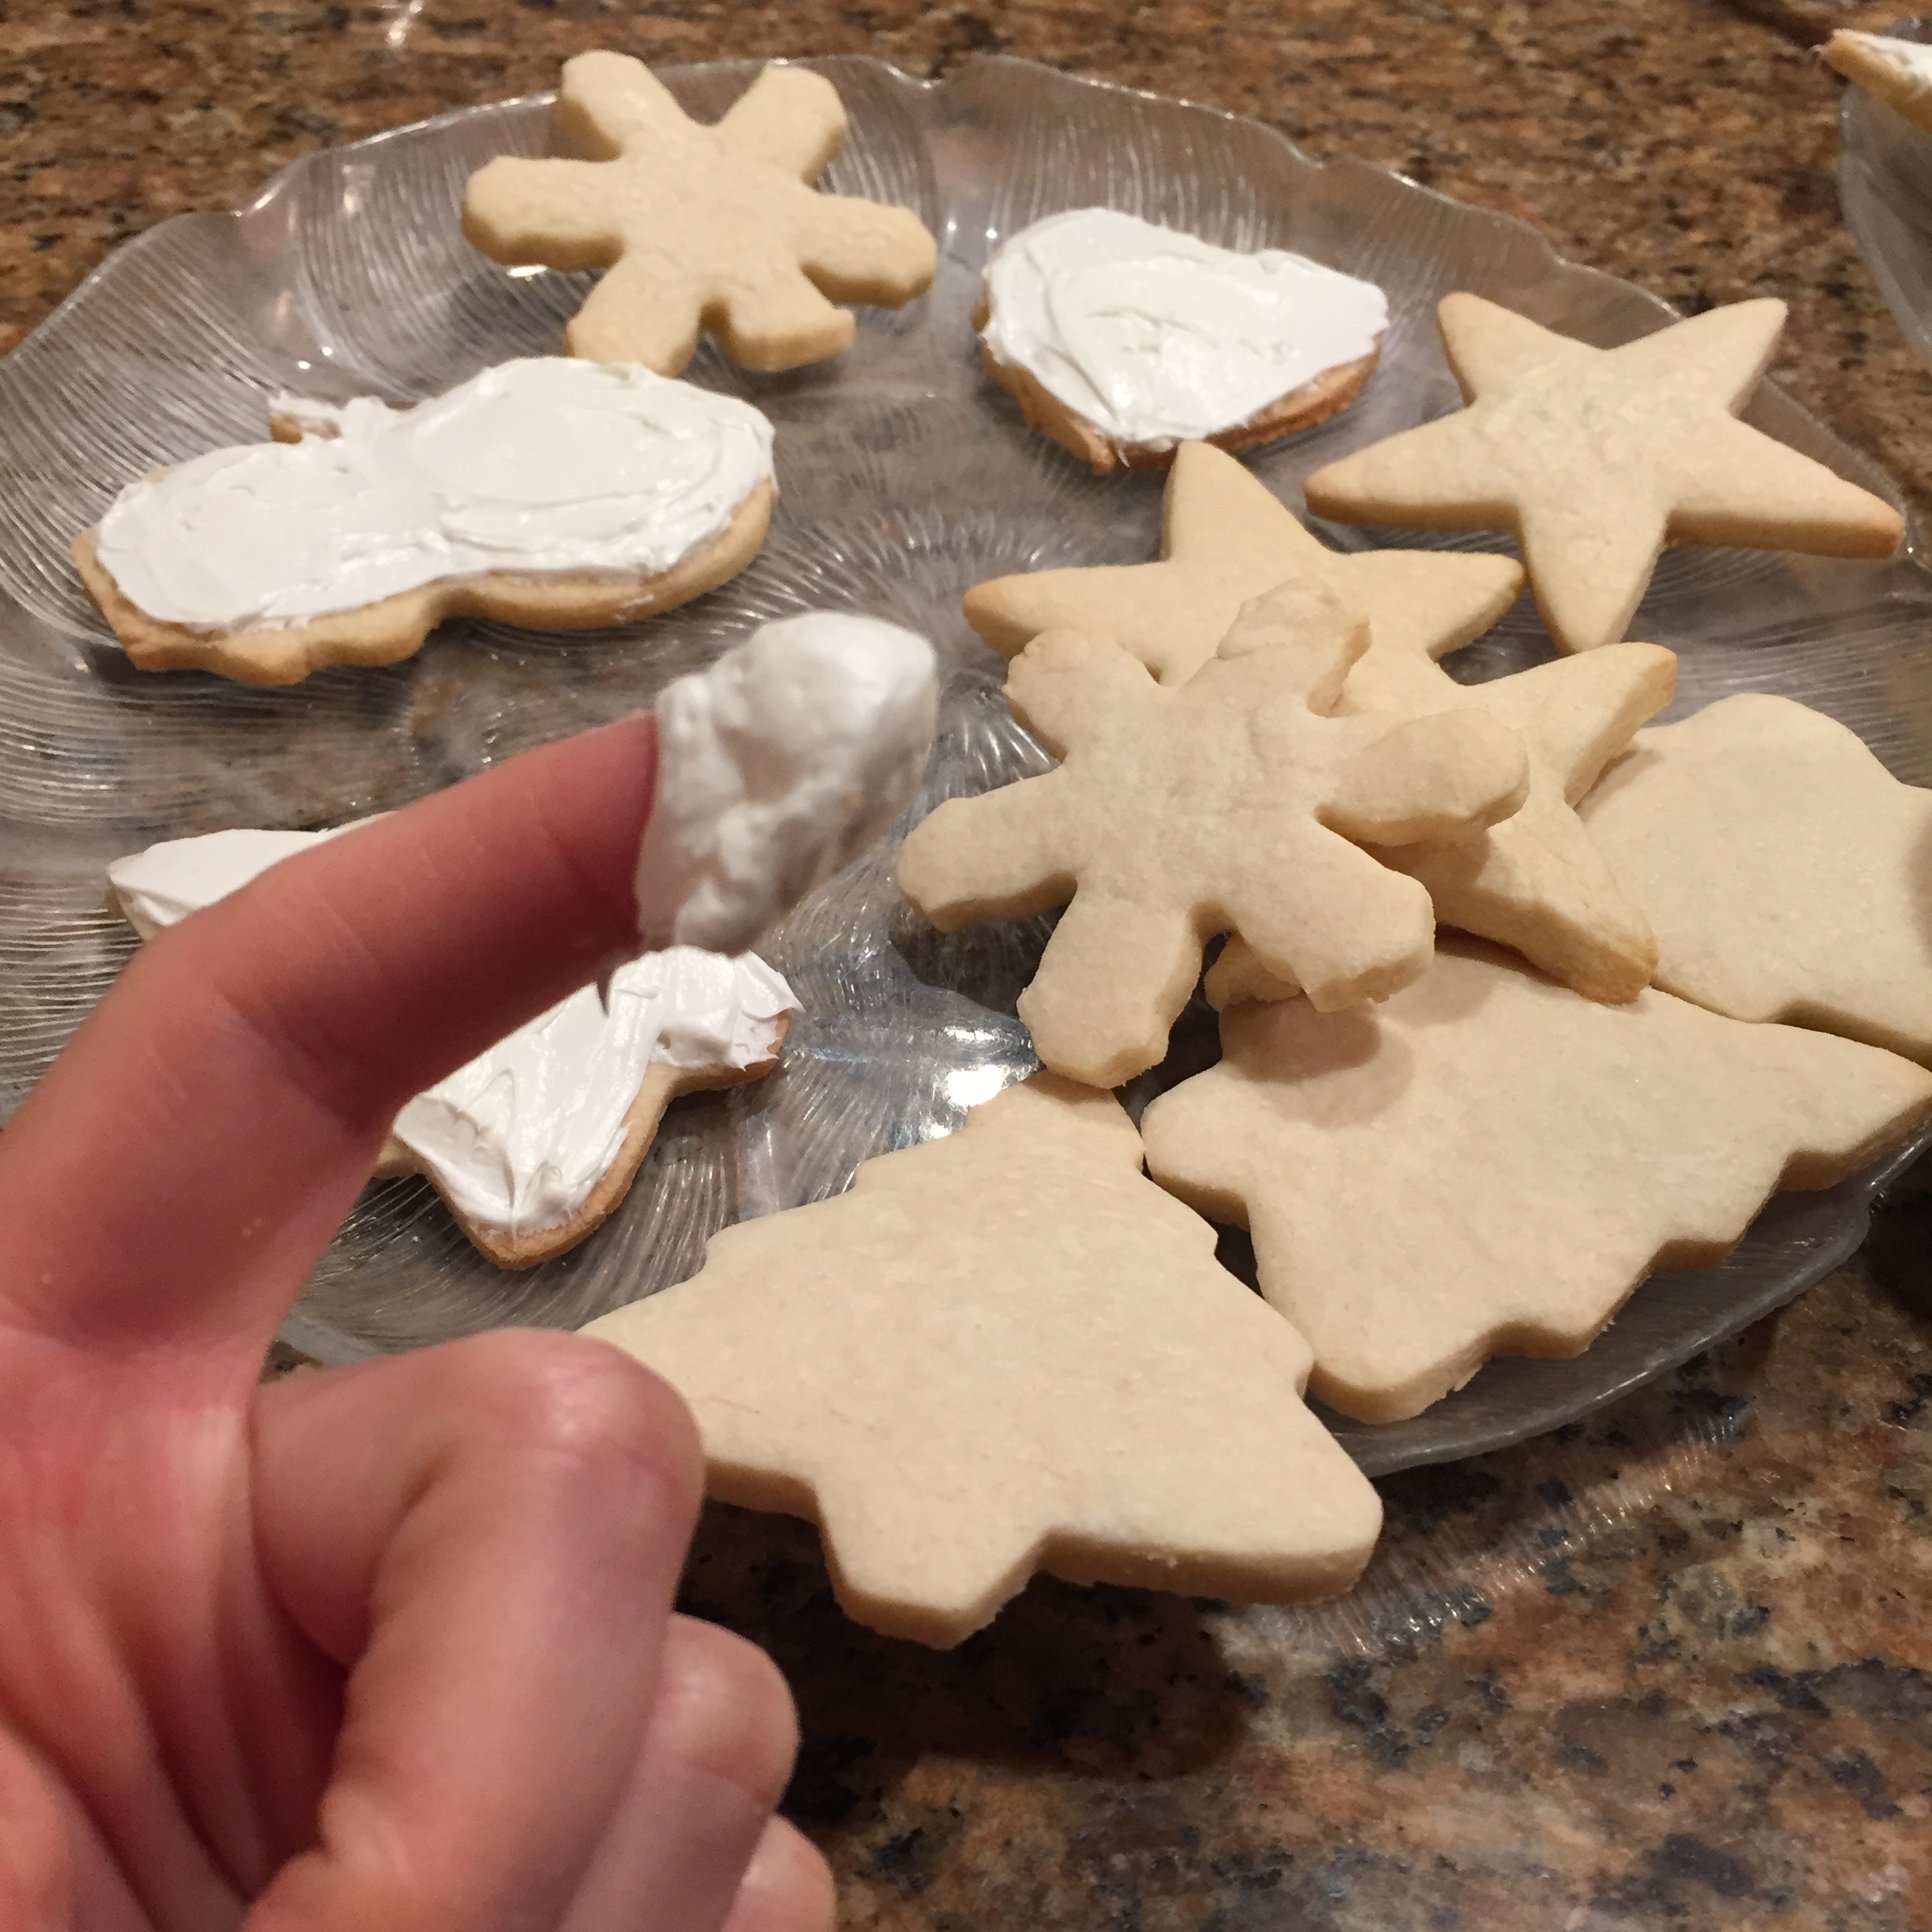 I may not be able to eat the sugar cookies, but I can eat the frosting